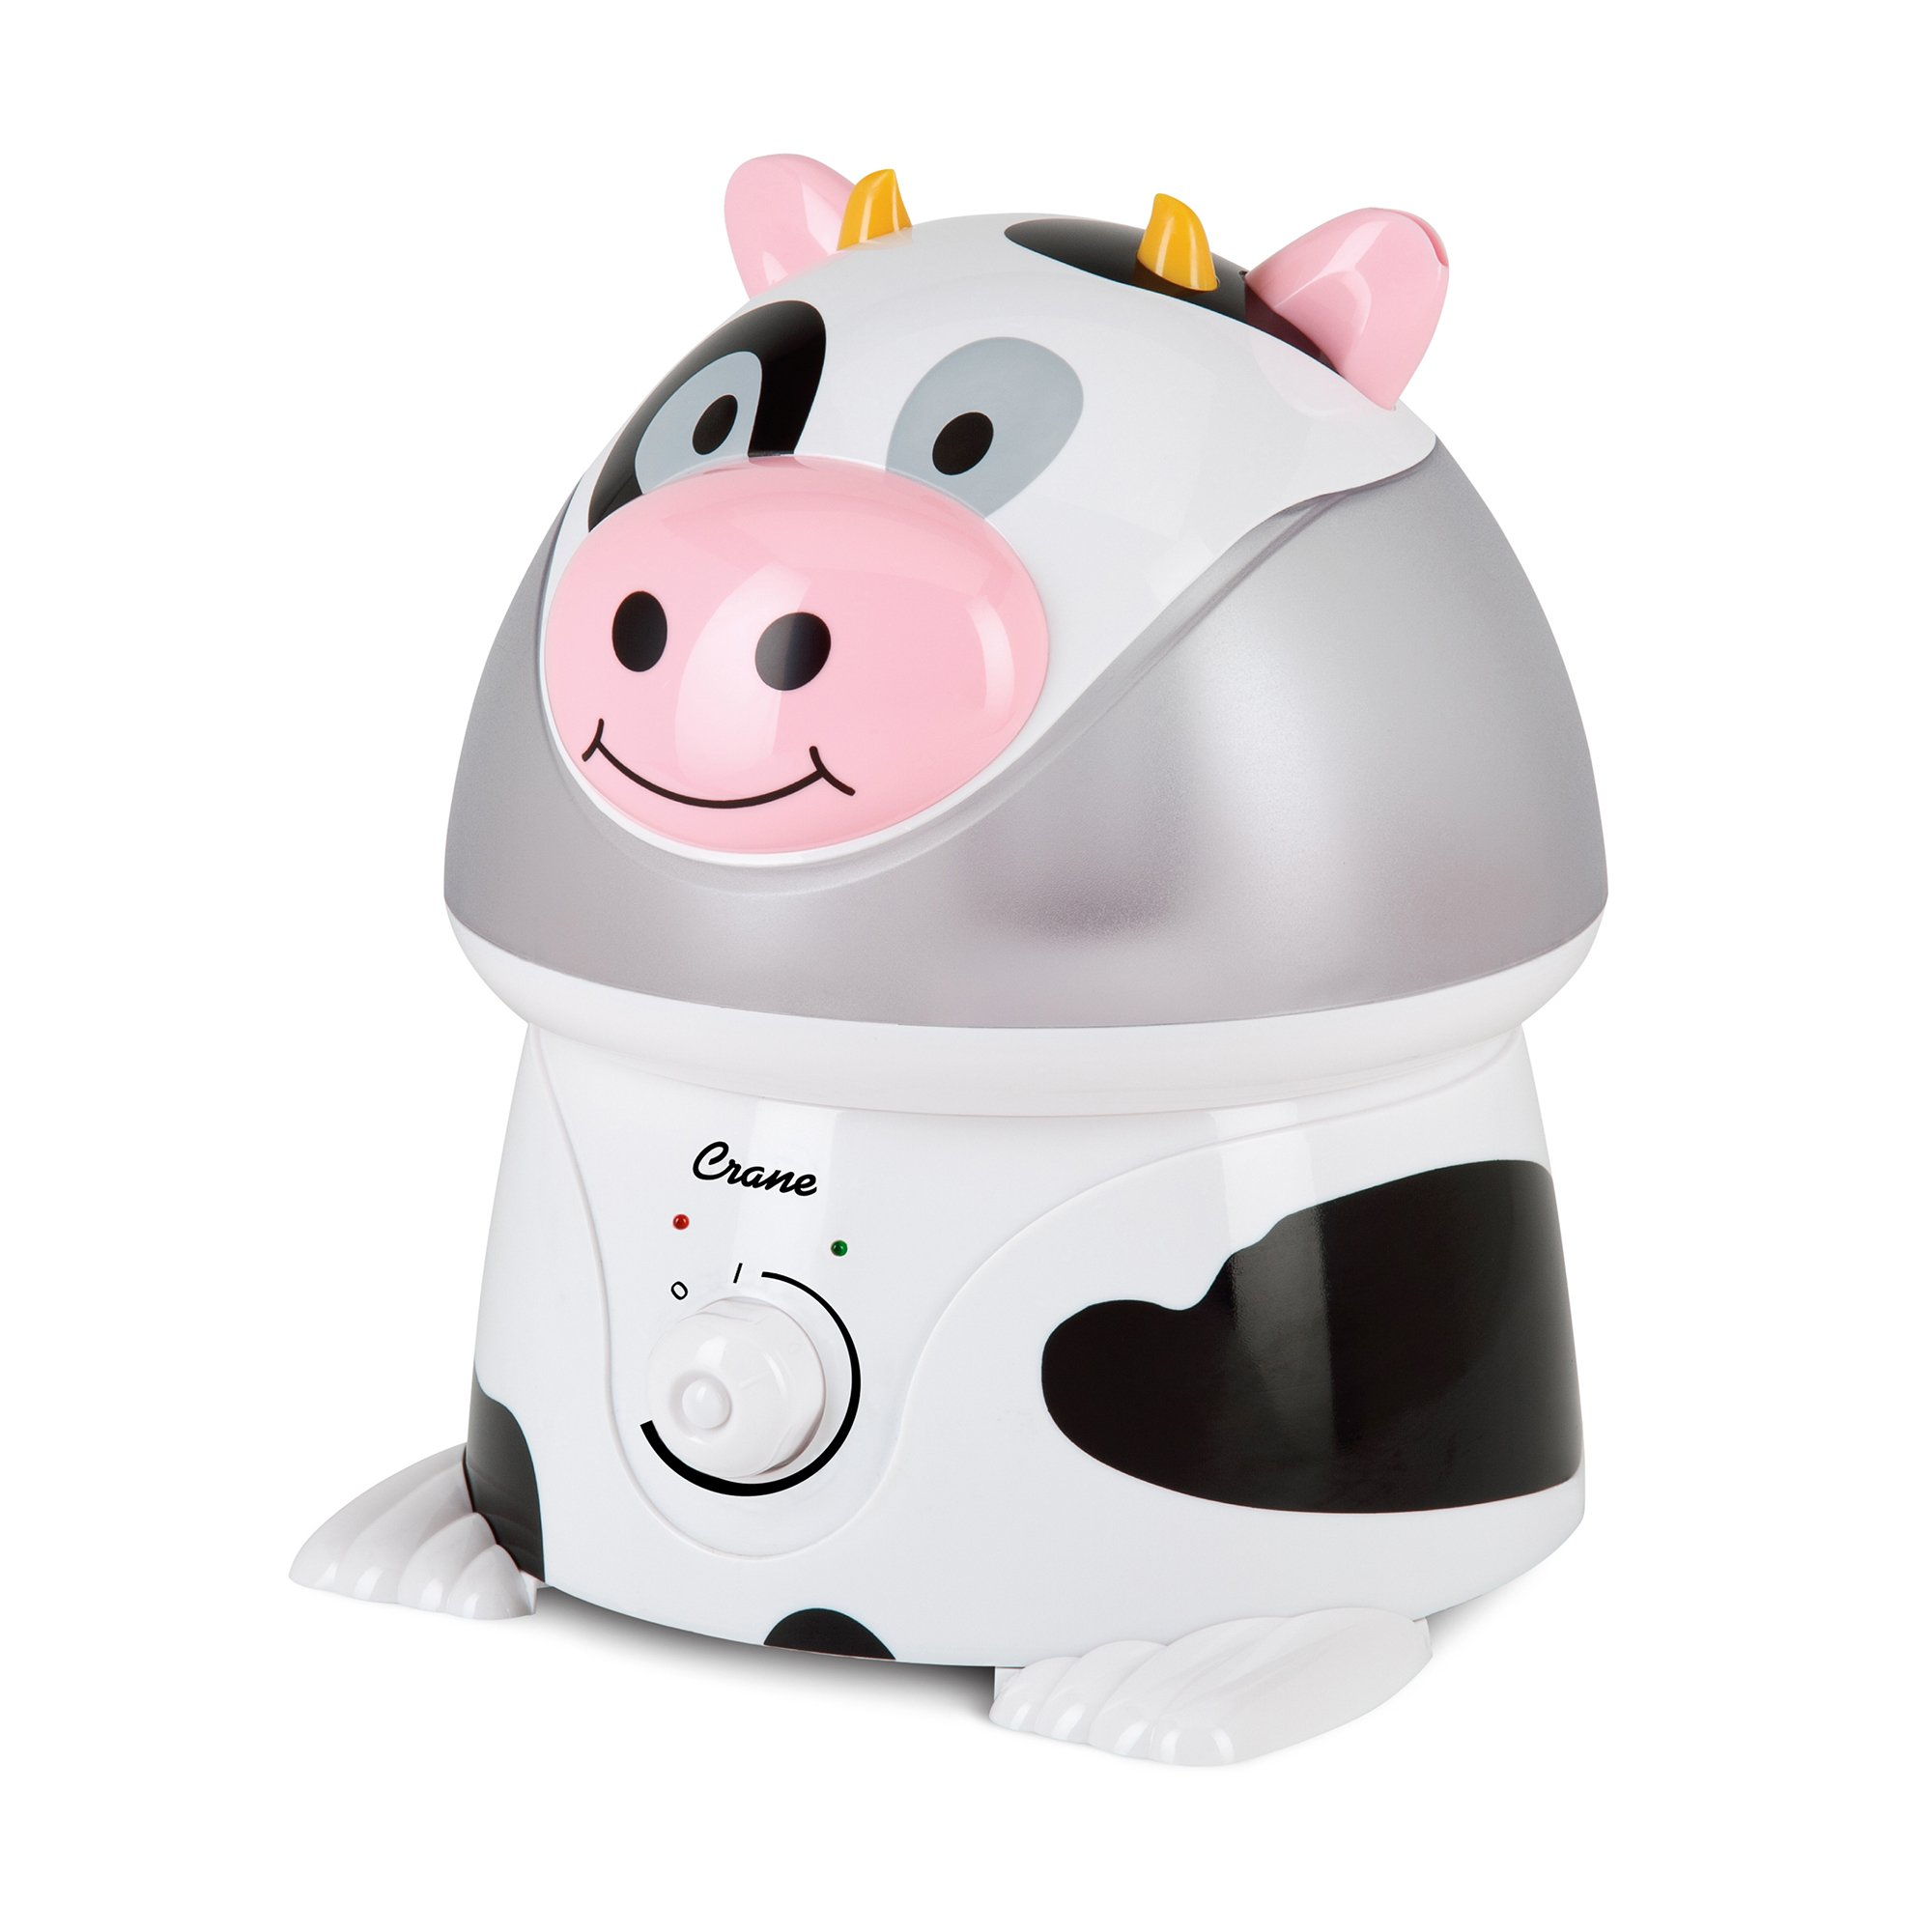 Crane USA Filter-Free Cool Mist Humidifiers for Kids, Cow